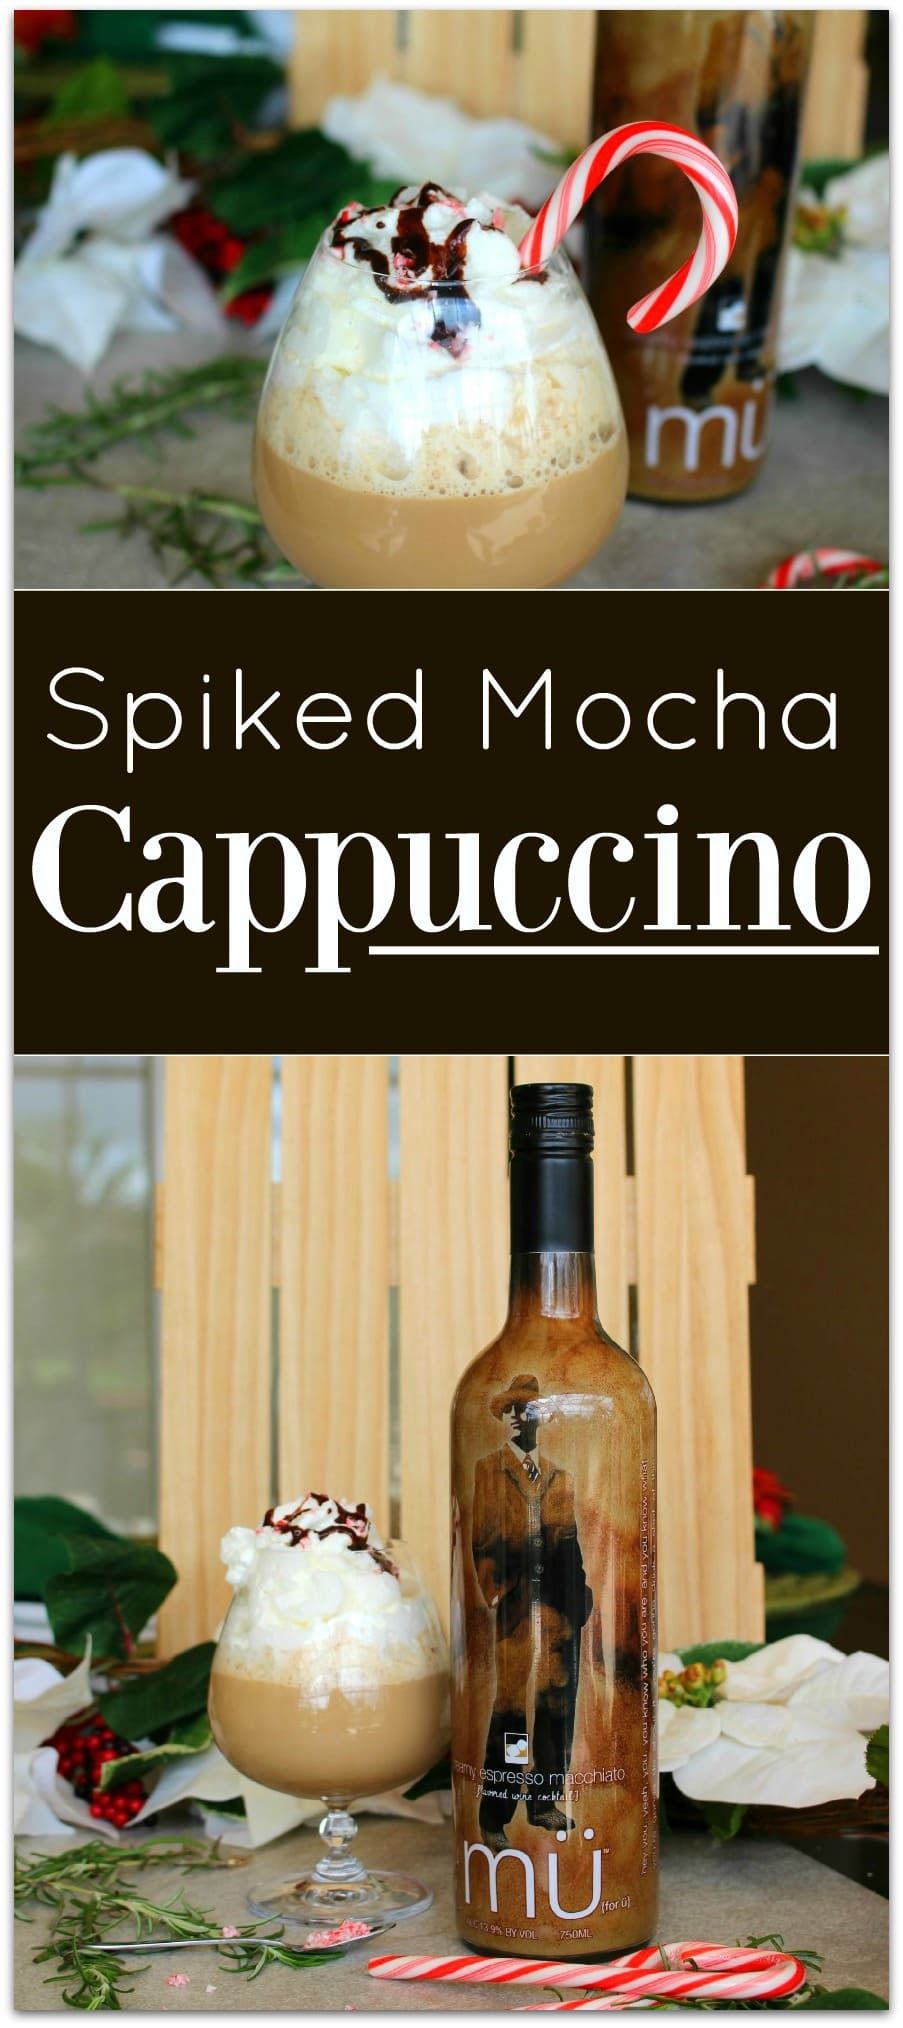 Looking for an easy dessert recipe? You've found it! This Spiked Mocha Cappuccino is so delicious and such an easy recipe! A drizzle of chocolate gives it that mocha flavor, and the peppermint adds holiday cheer!